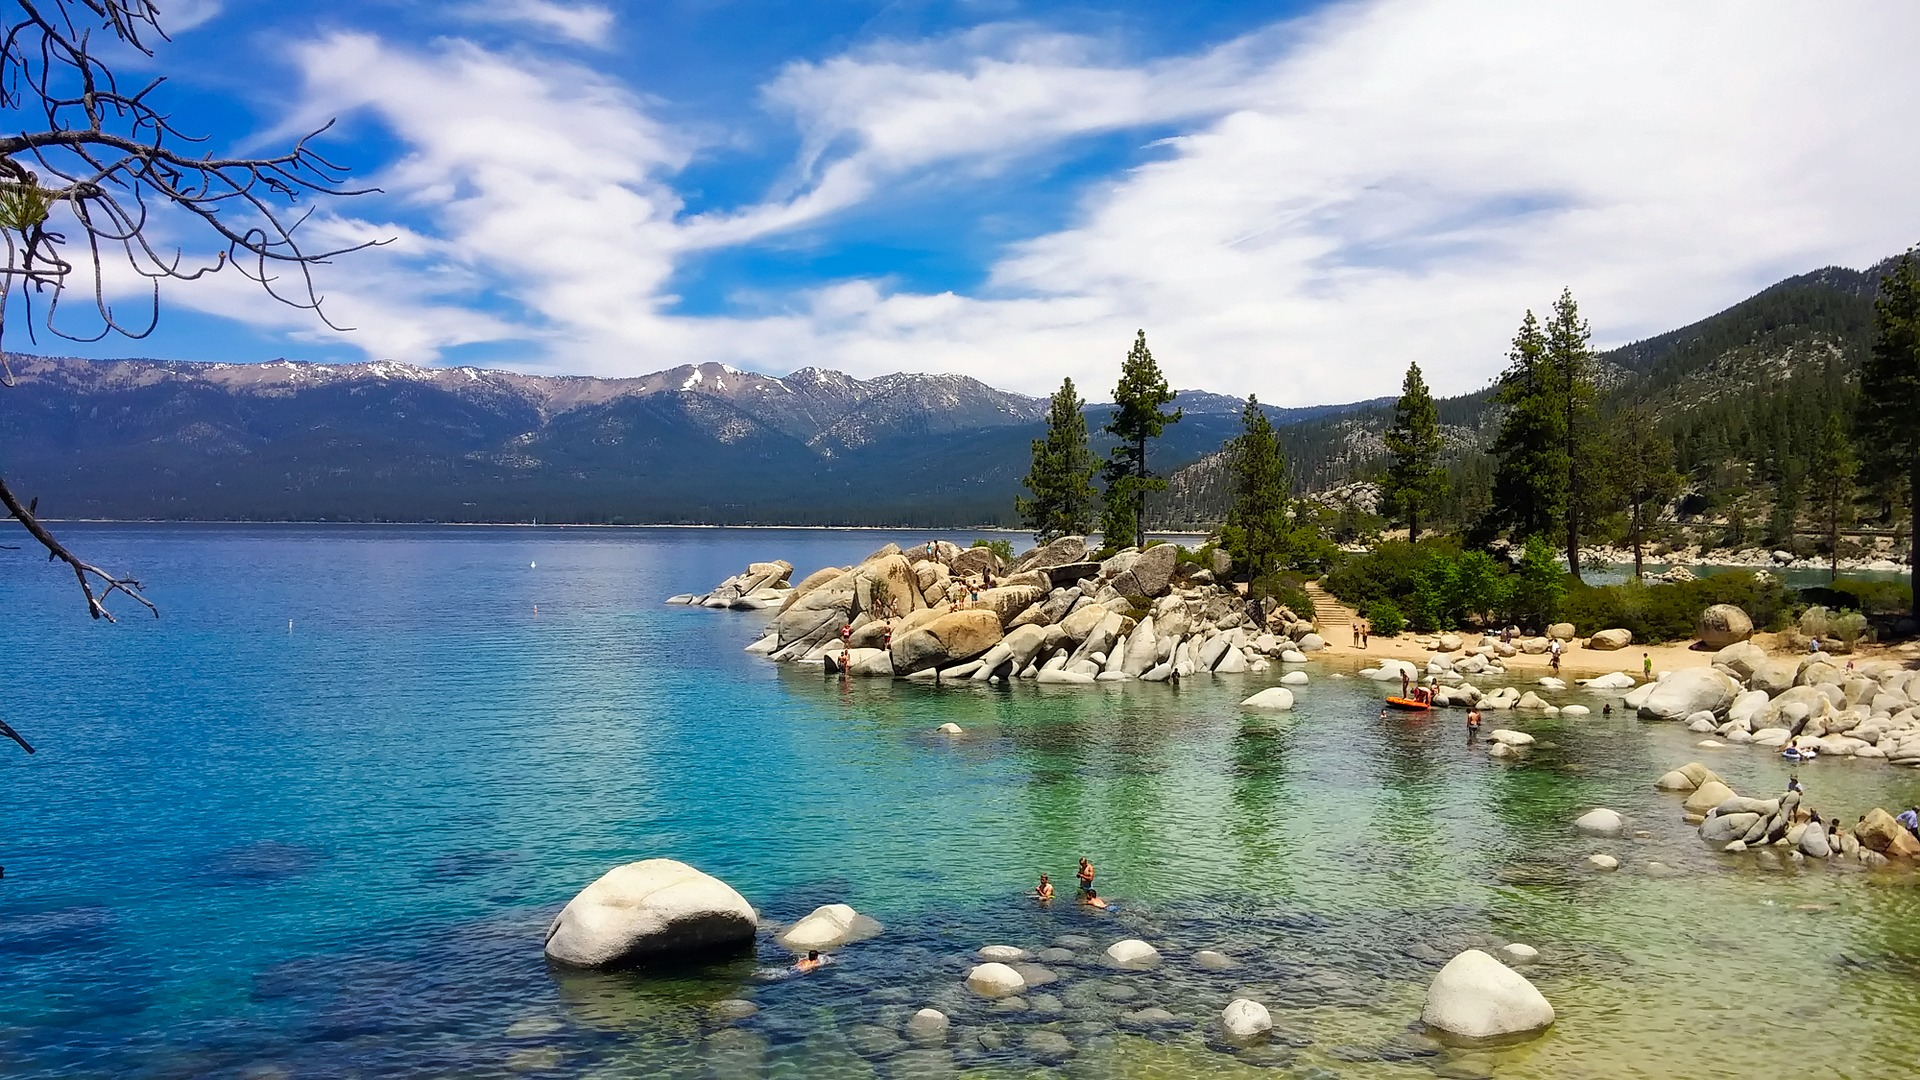 lake-tahoe-2183724_1920.jpg